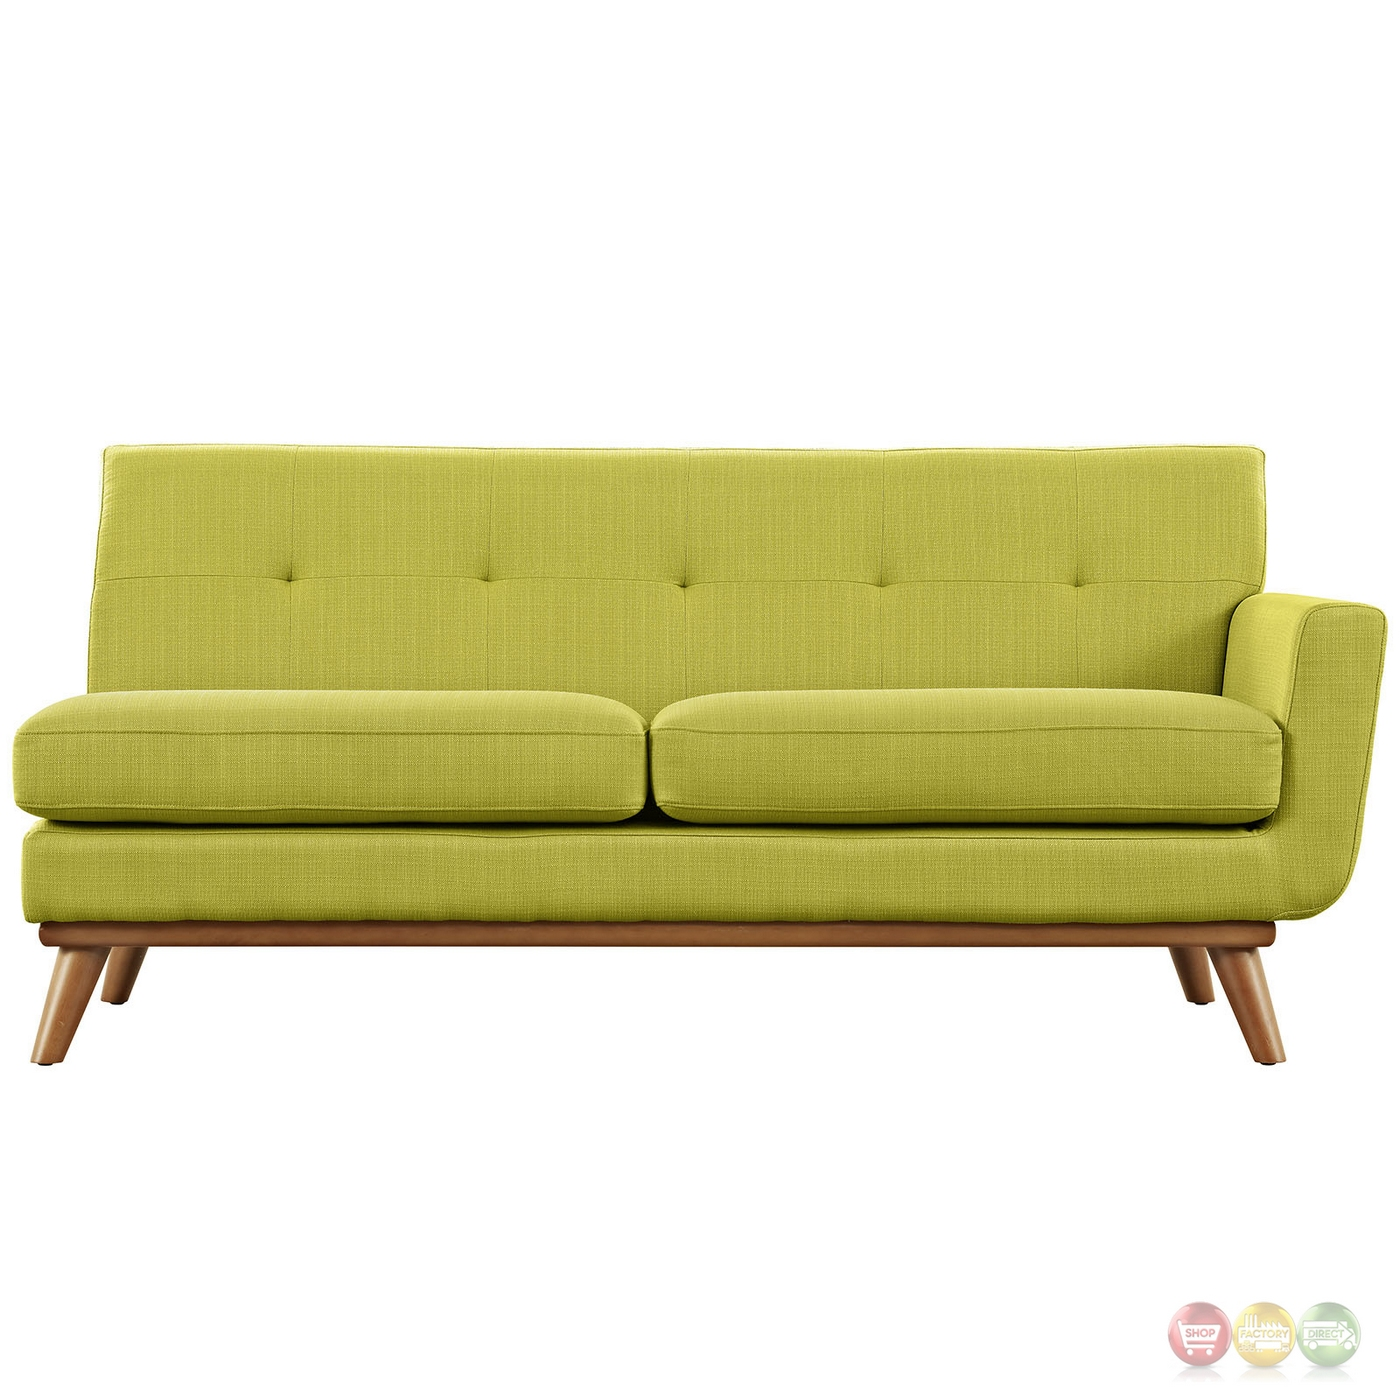 Engage Modern Button Tufted Upholstered Right Arm Loveseat Wheatgrass